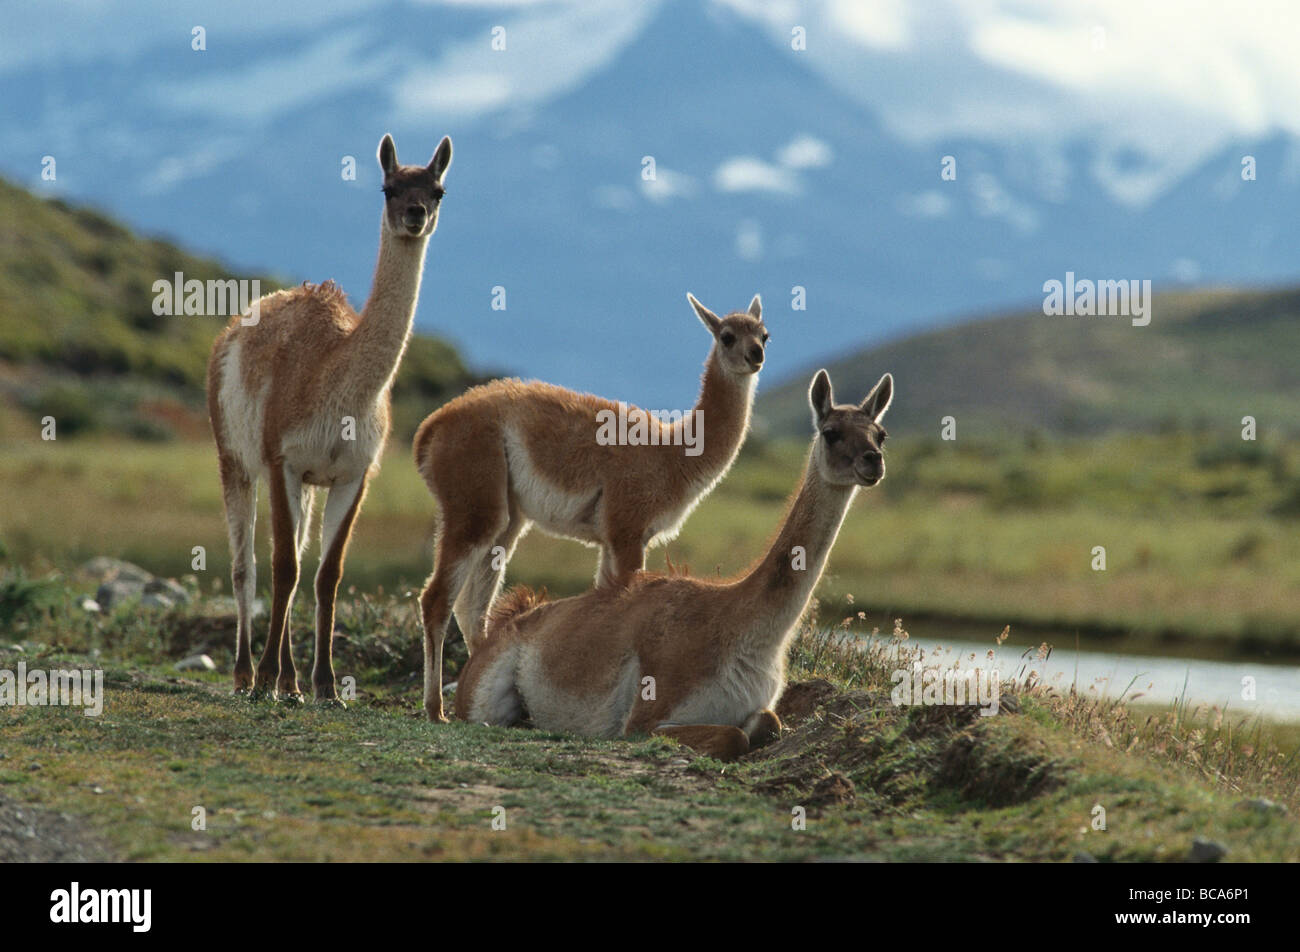 Lama Guanicoe with young animals, Torres del Paine National Park, Andes, Patagonia, Chile - Stock Image